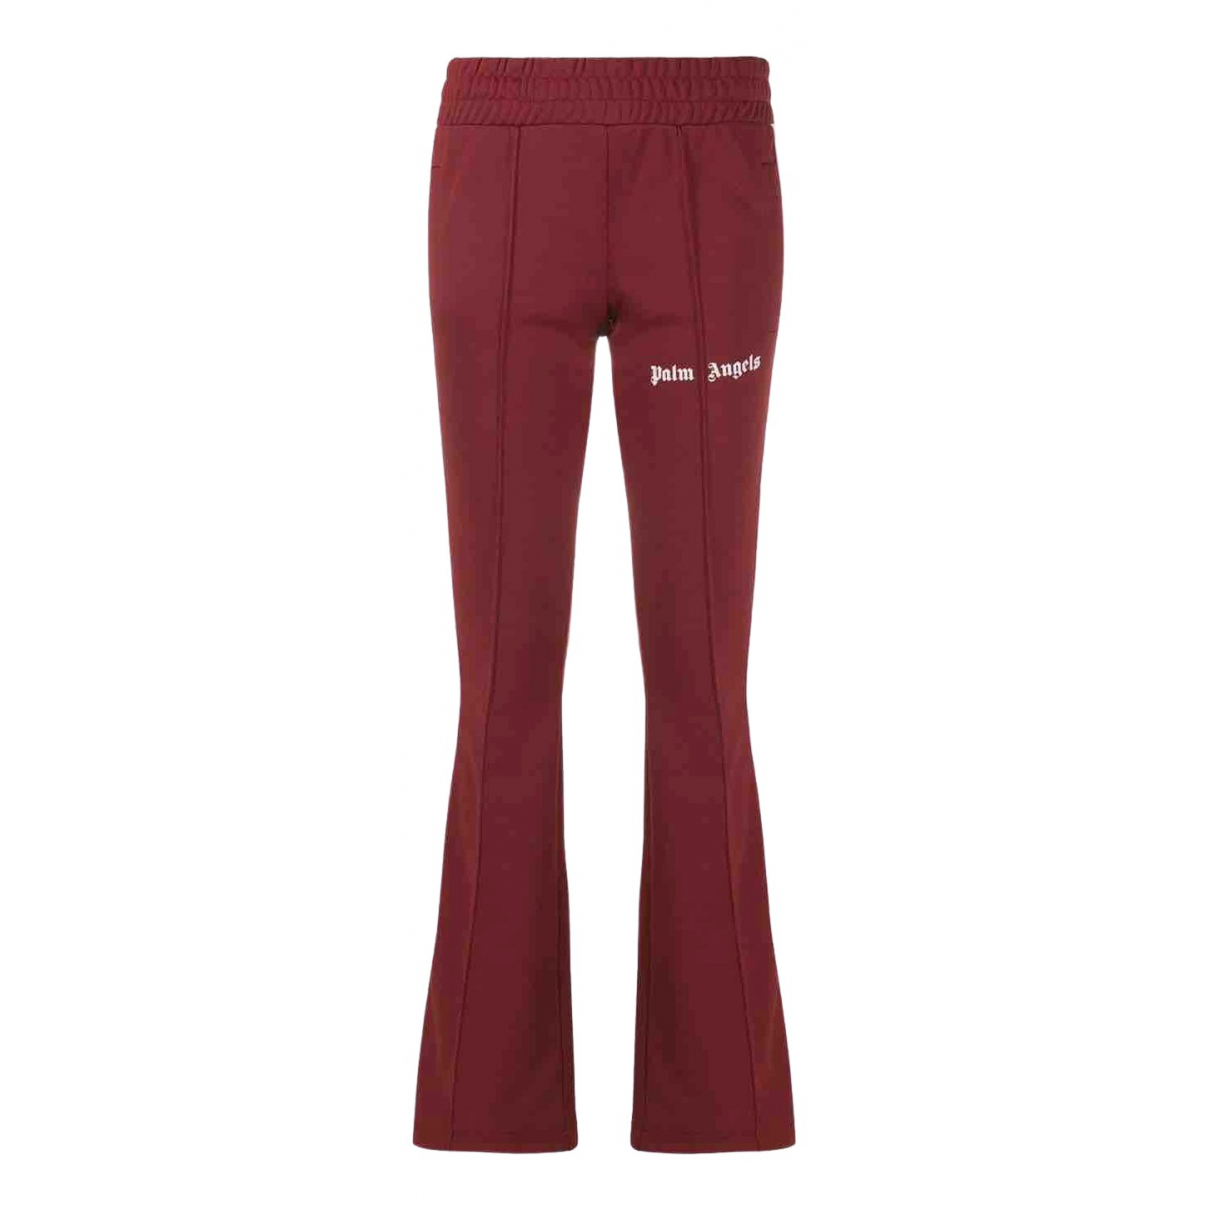 Palm Angels \N Burgundy Trousers for Women XXS International